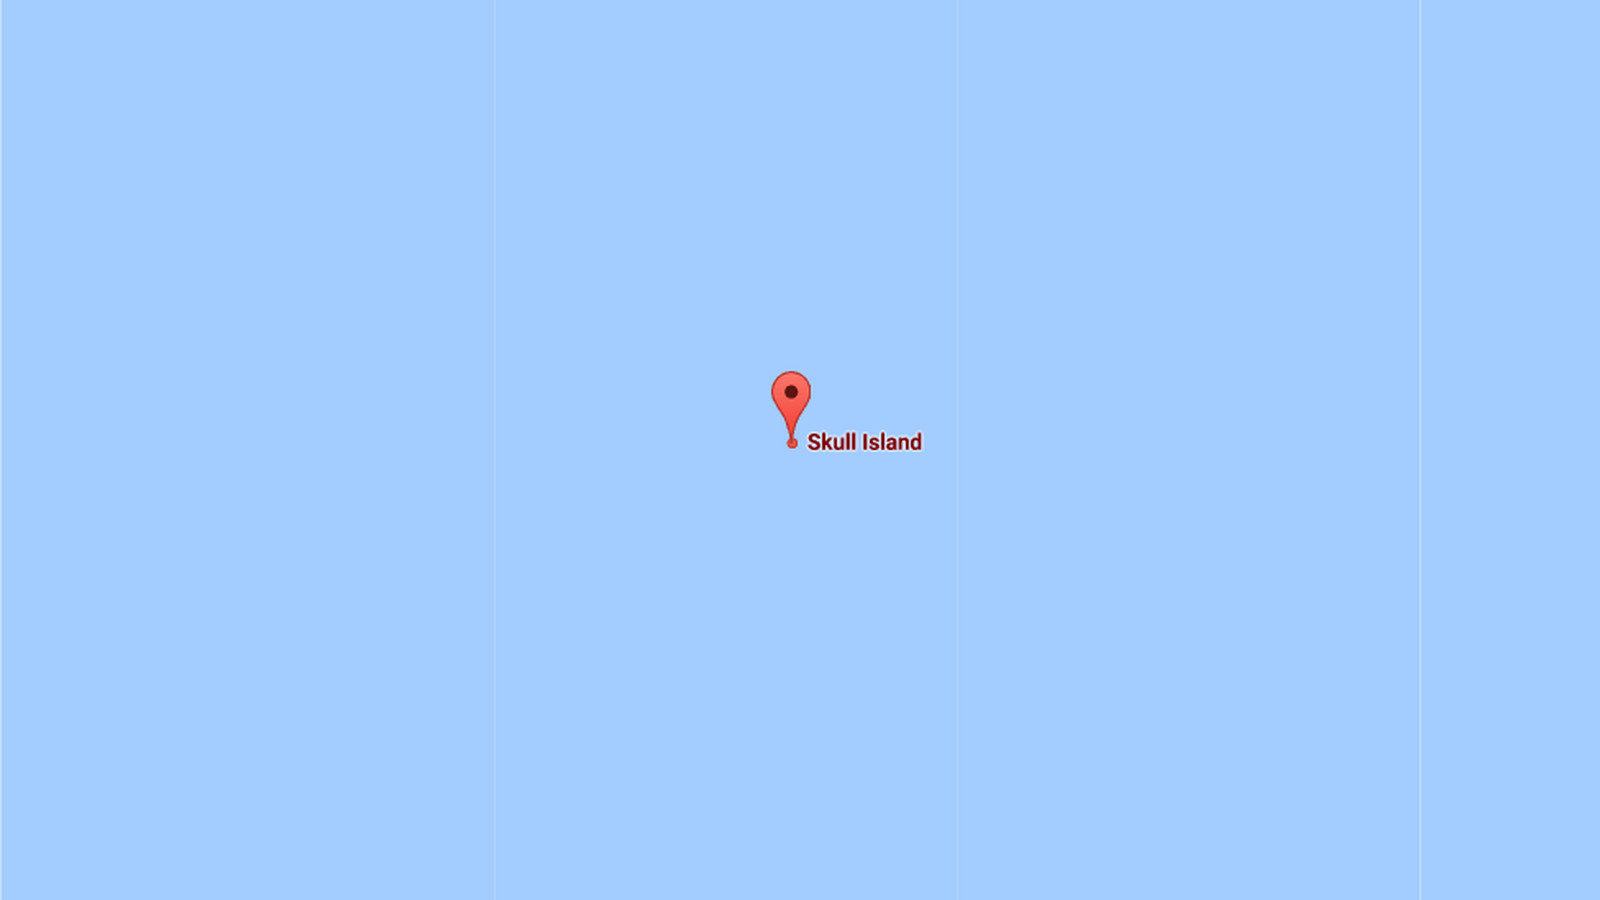 You can now locate Kong's Skull Island on Google Maps